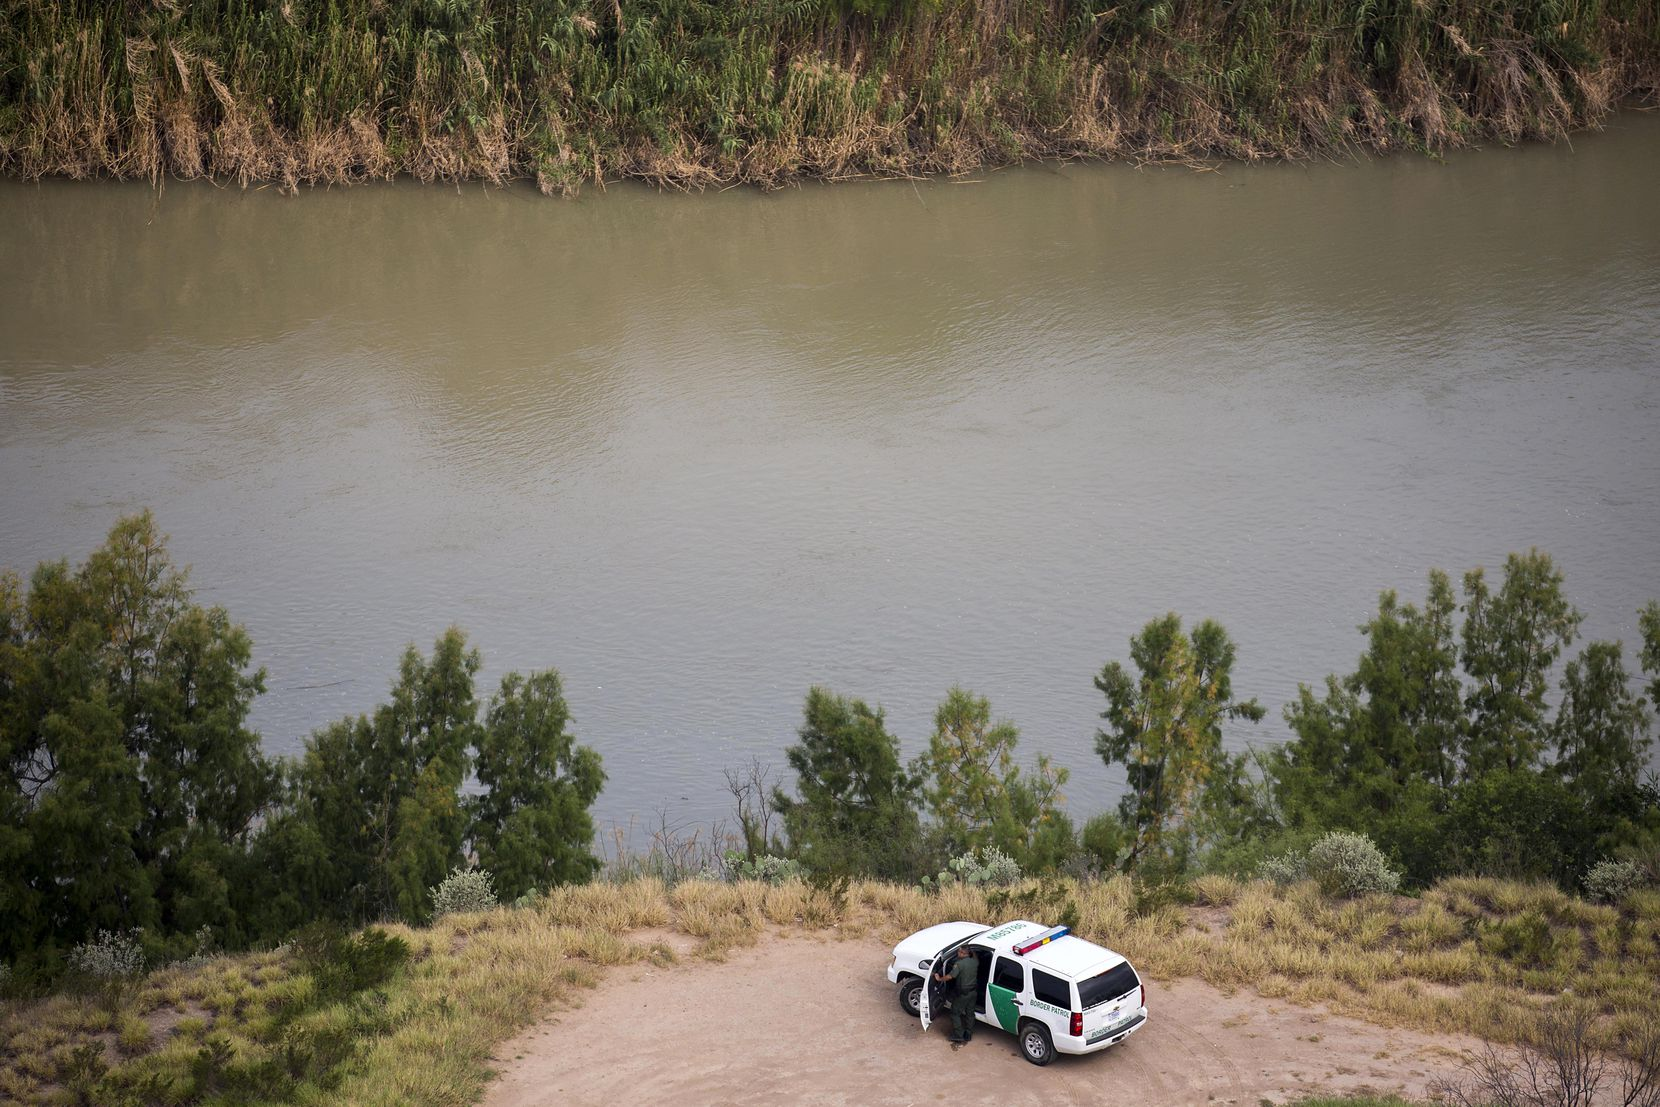 A U.S. Customs and Border Protection officer watches over the Rio Grande River on Wednesday, May 10, 2017, at El Cenizo, Texas.